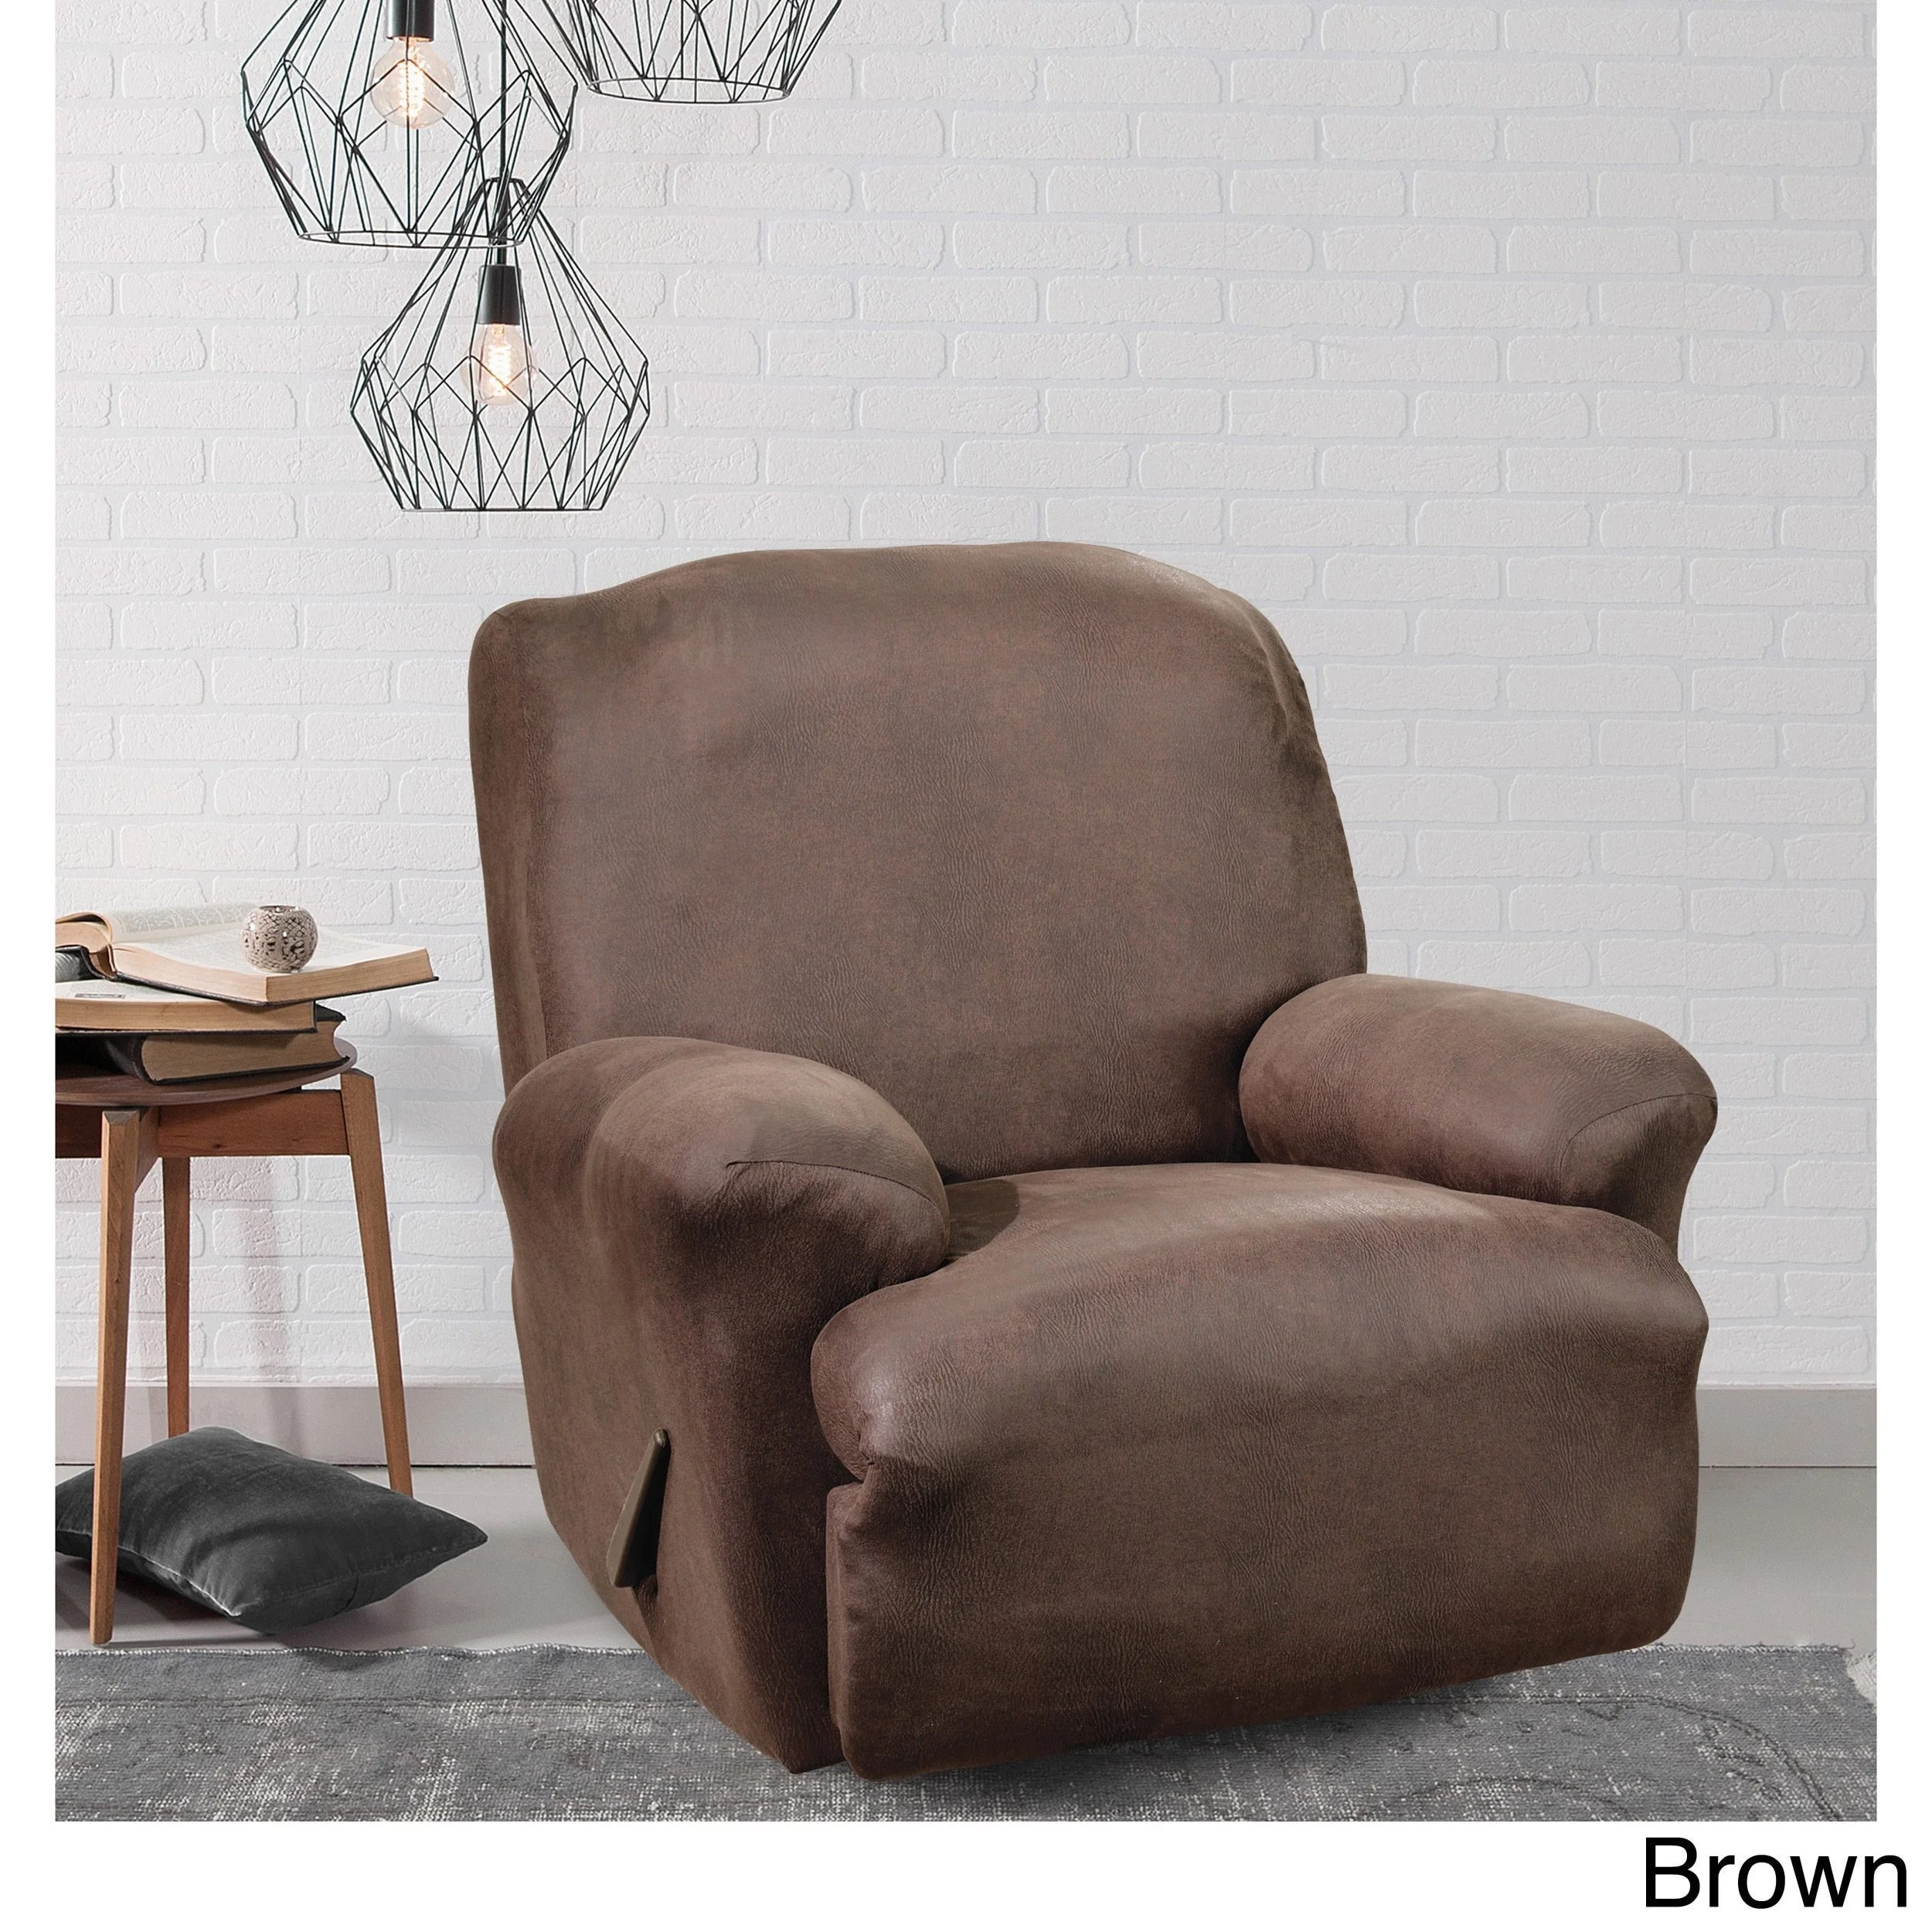 faux leather recliner chair covers beach canopy buy and wing slipcovers online at